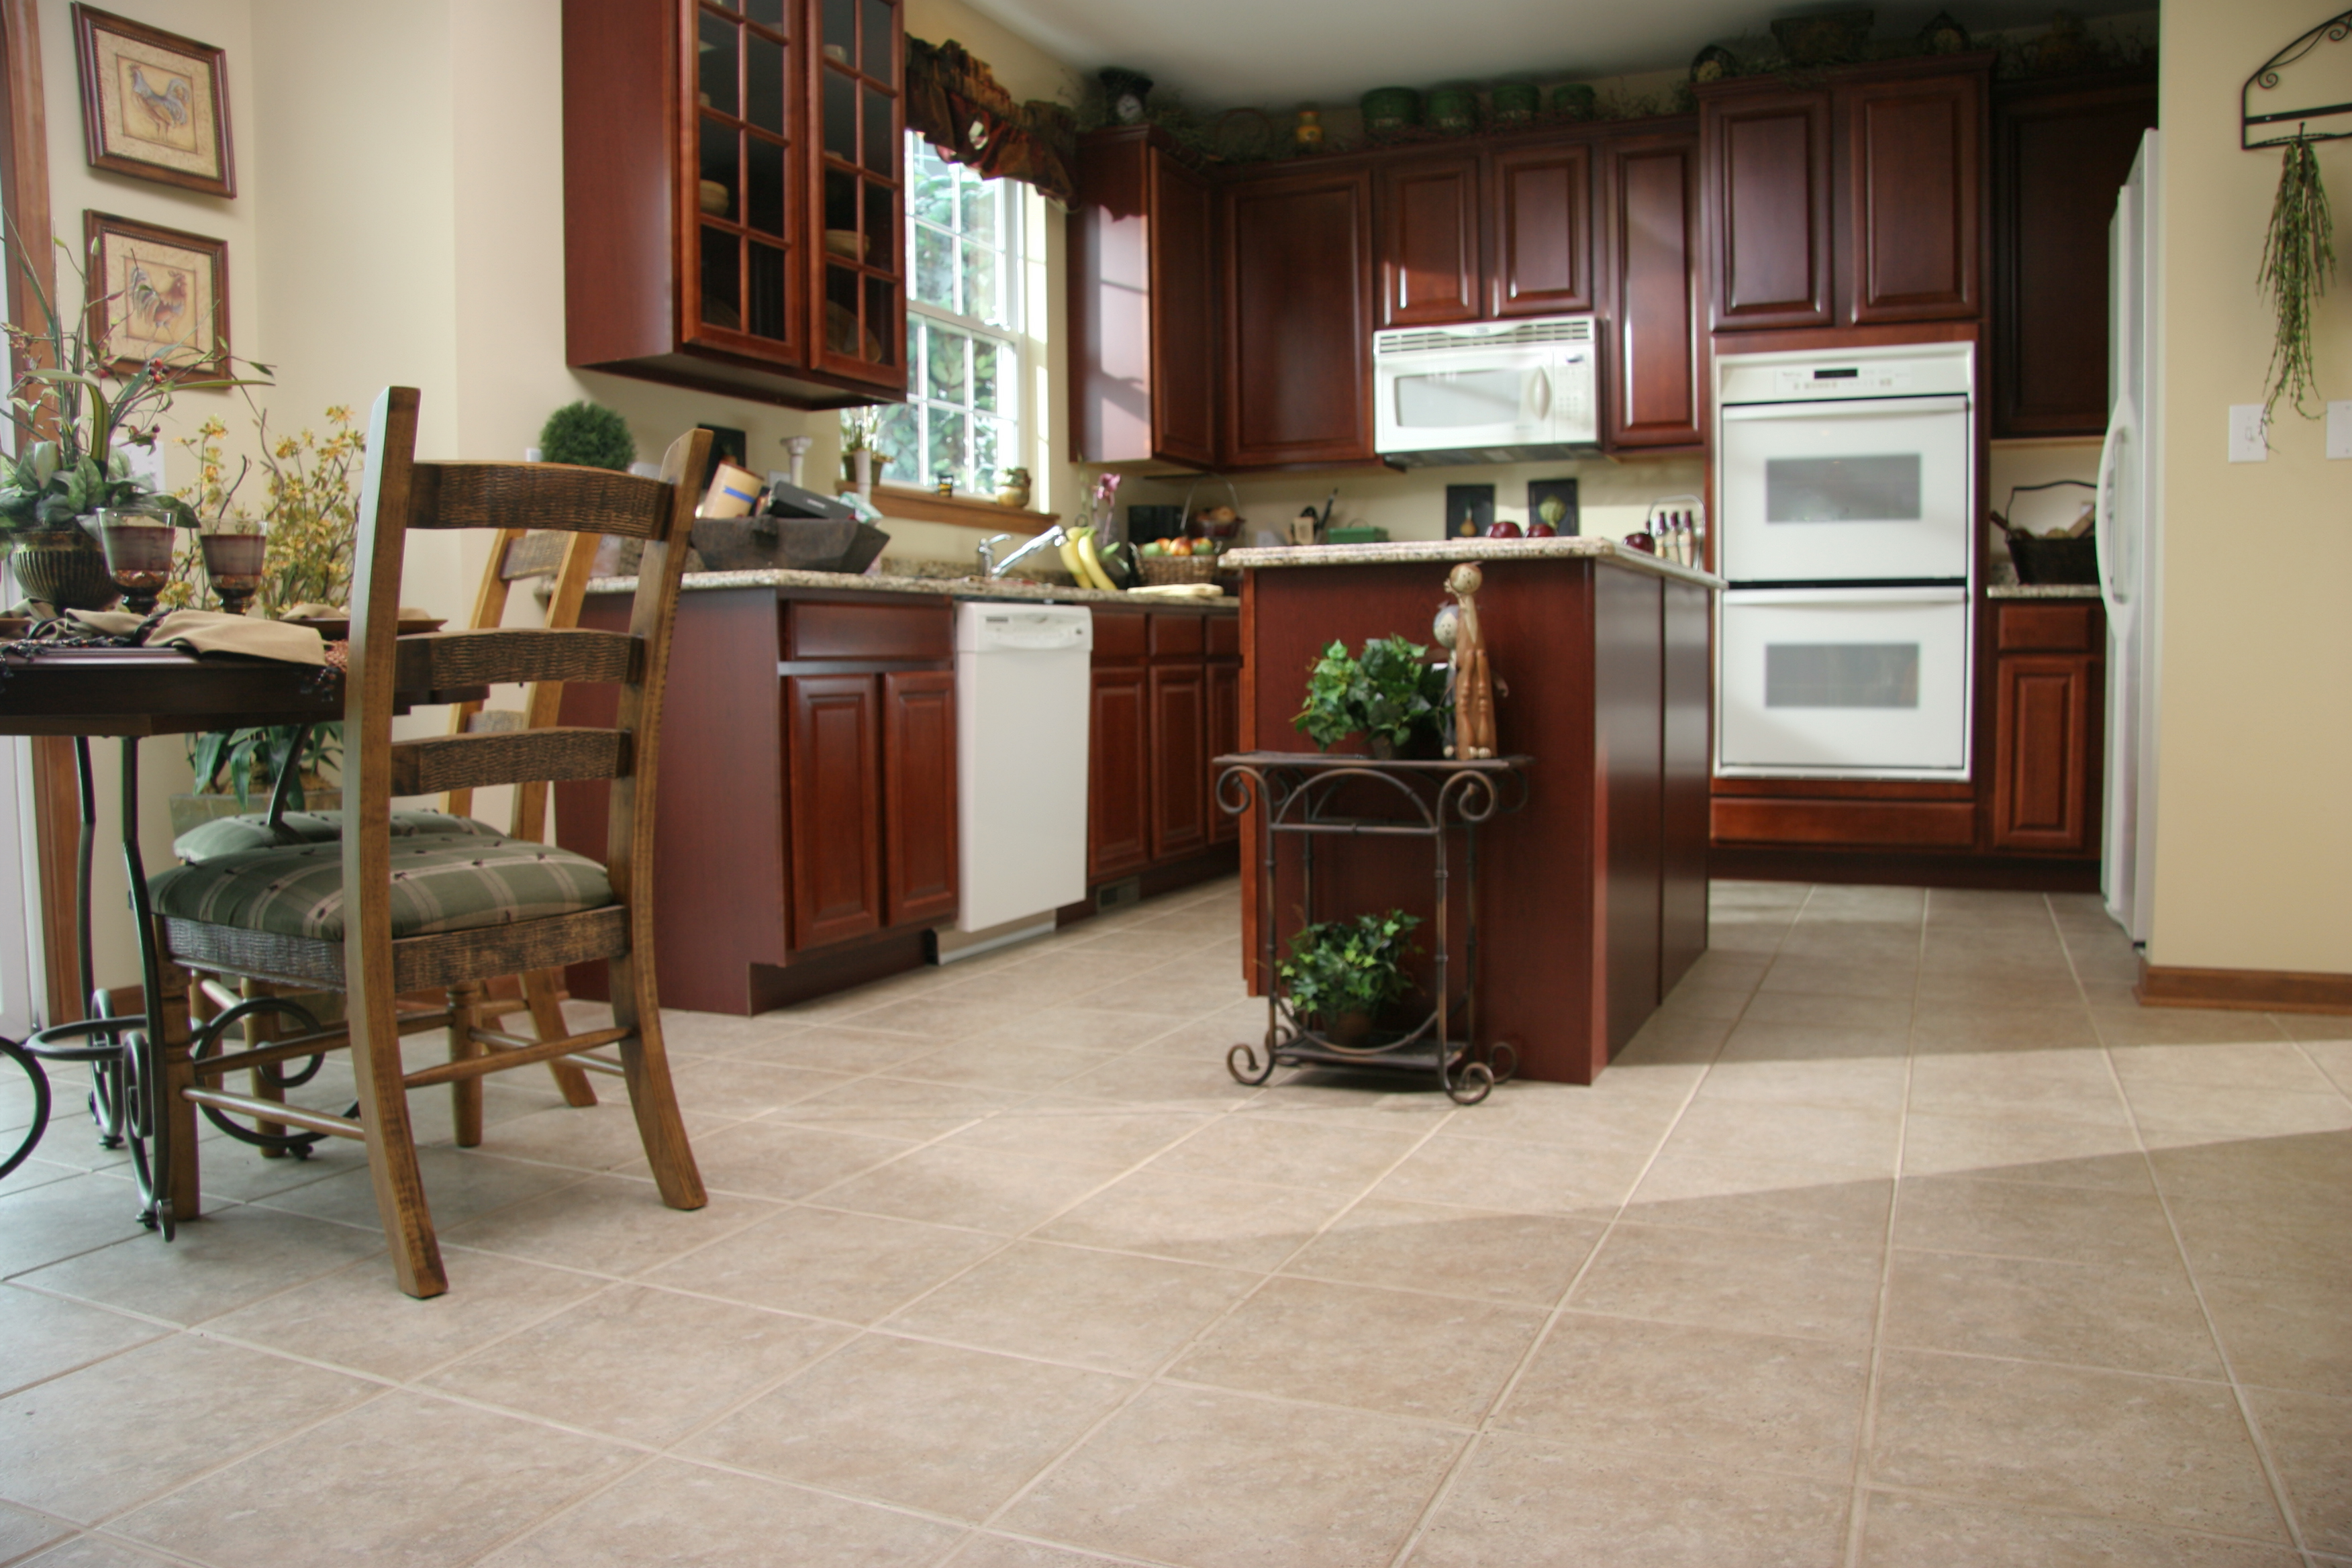 5 flooring options for kitchens and bathrooms empire Luxury kitchen flooring